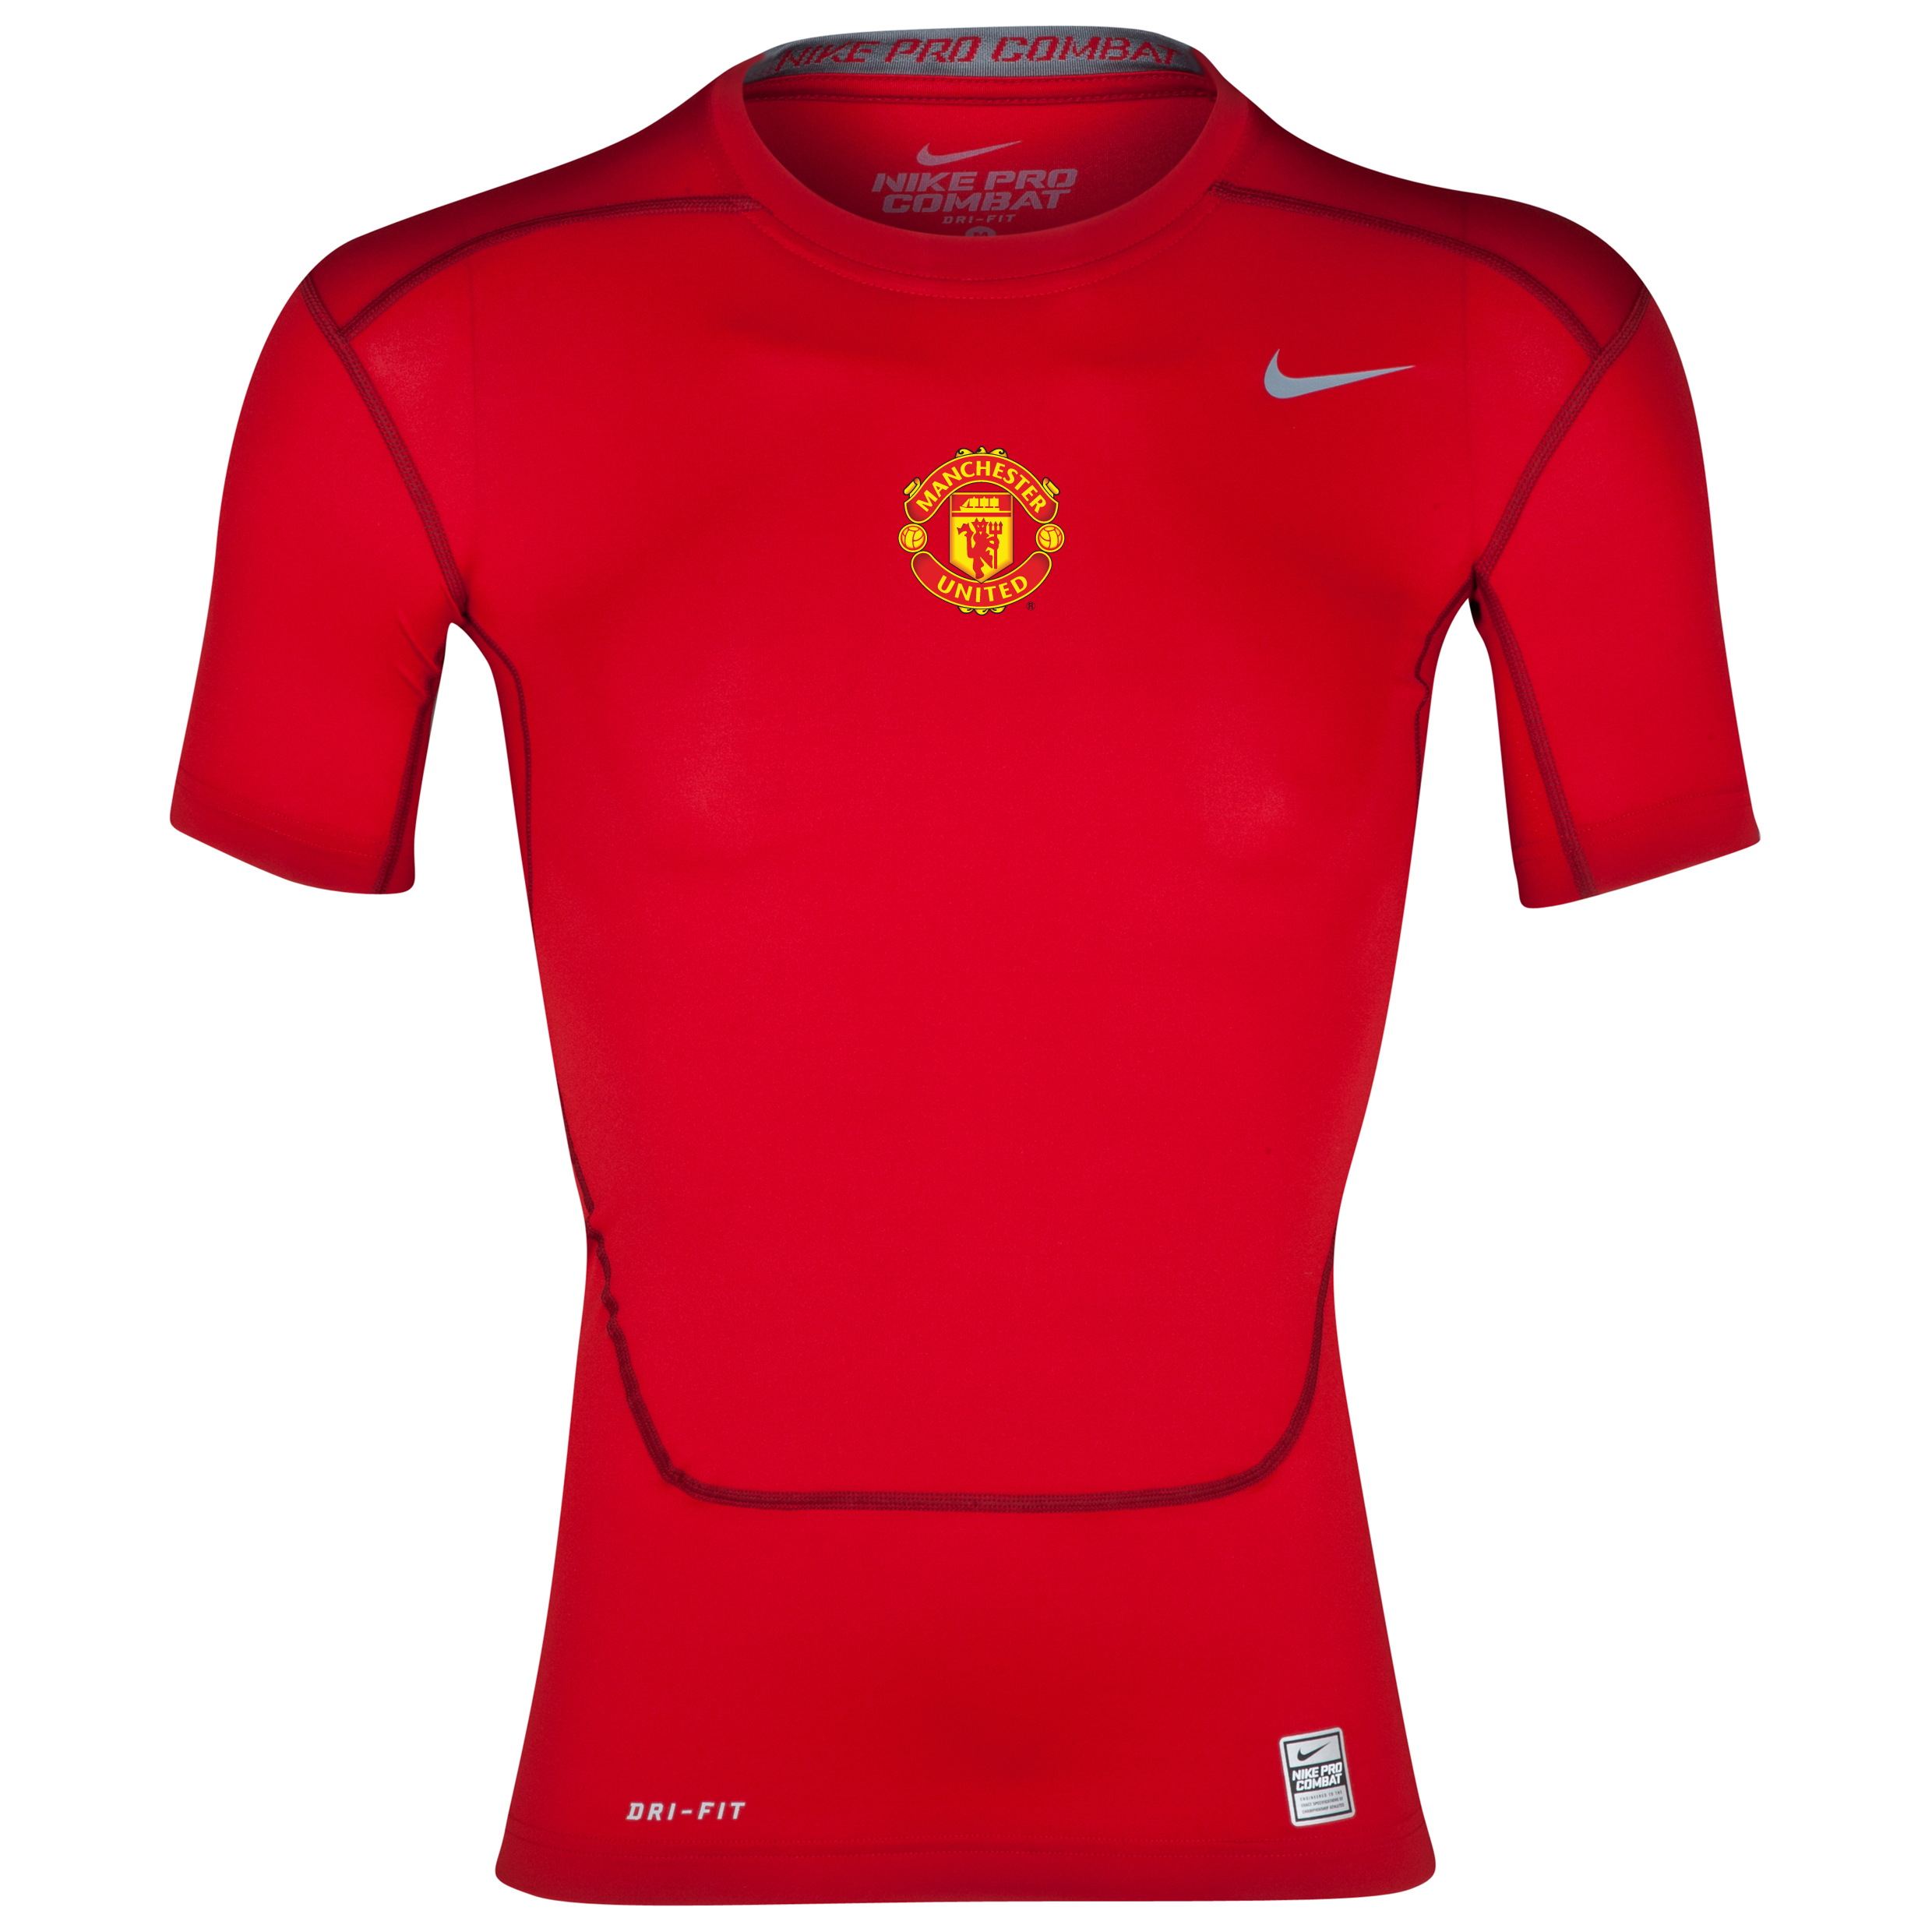 Nike Pro Combat Core Base Layer Top Red with Man United printing